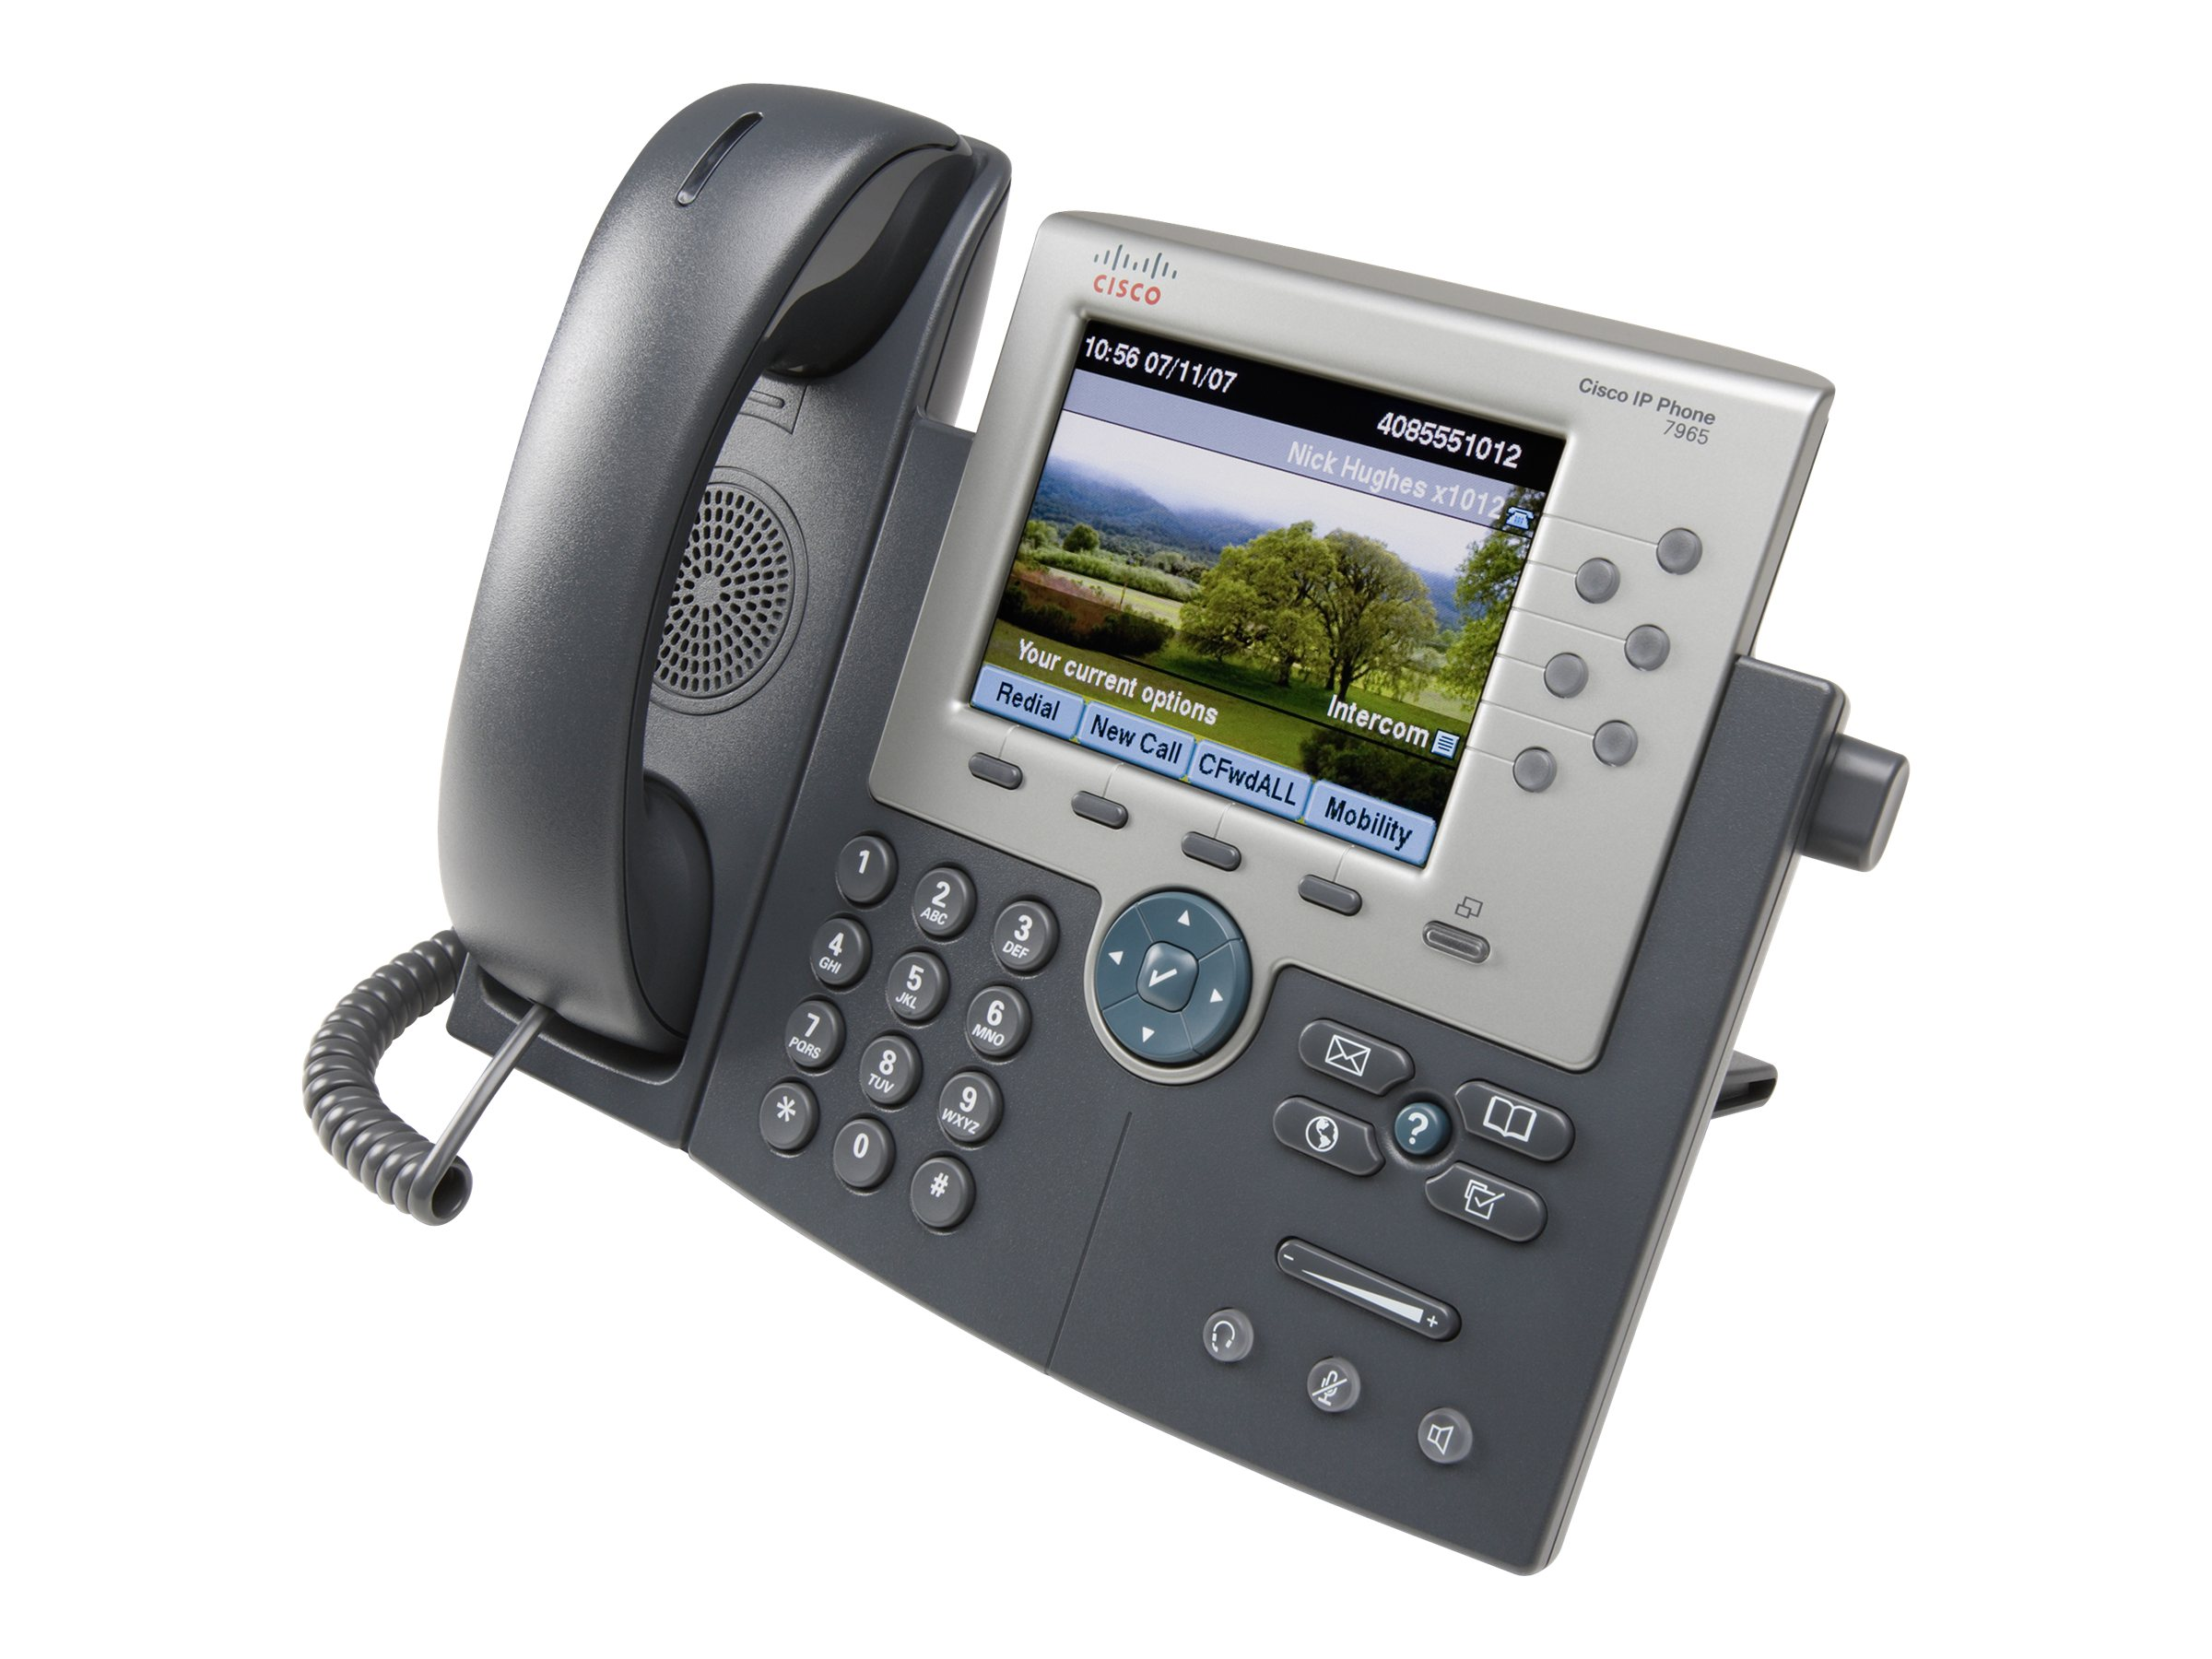 Cisco Unified IP Phone 7965G - VoIP phone